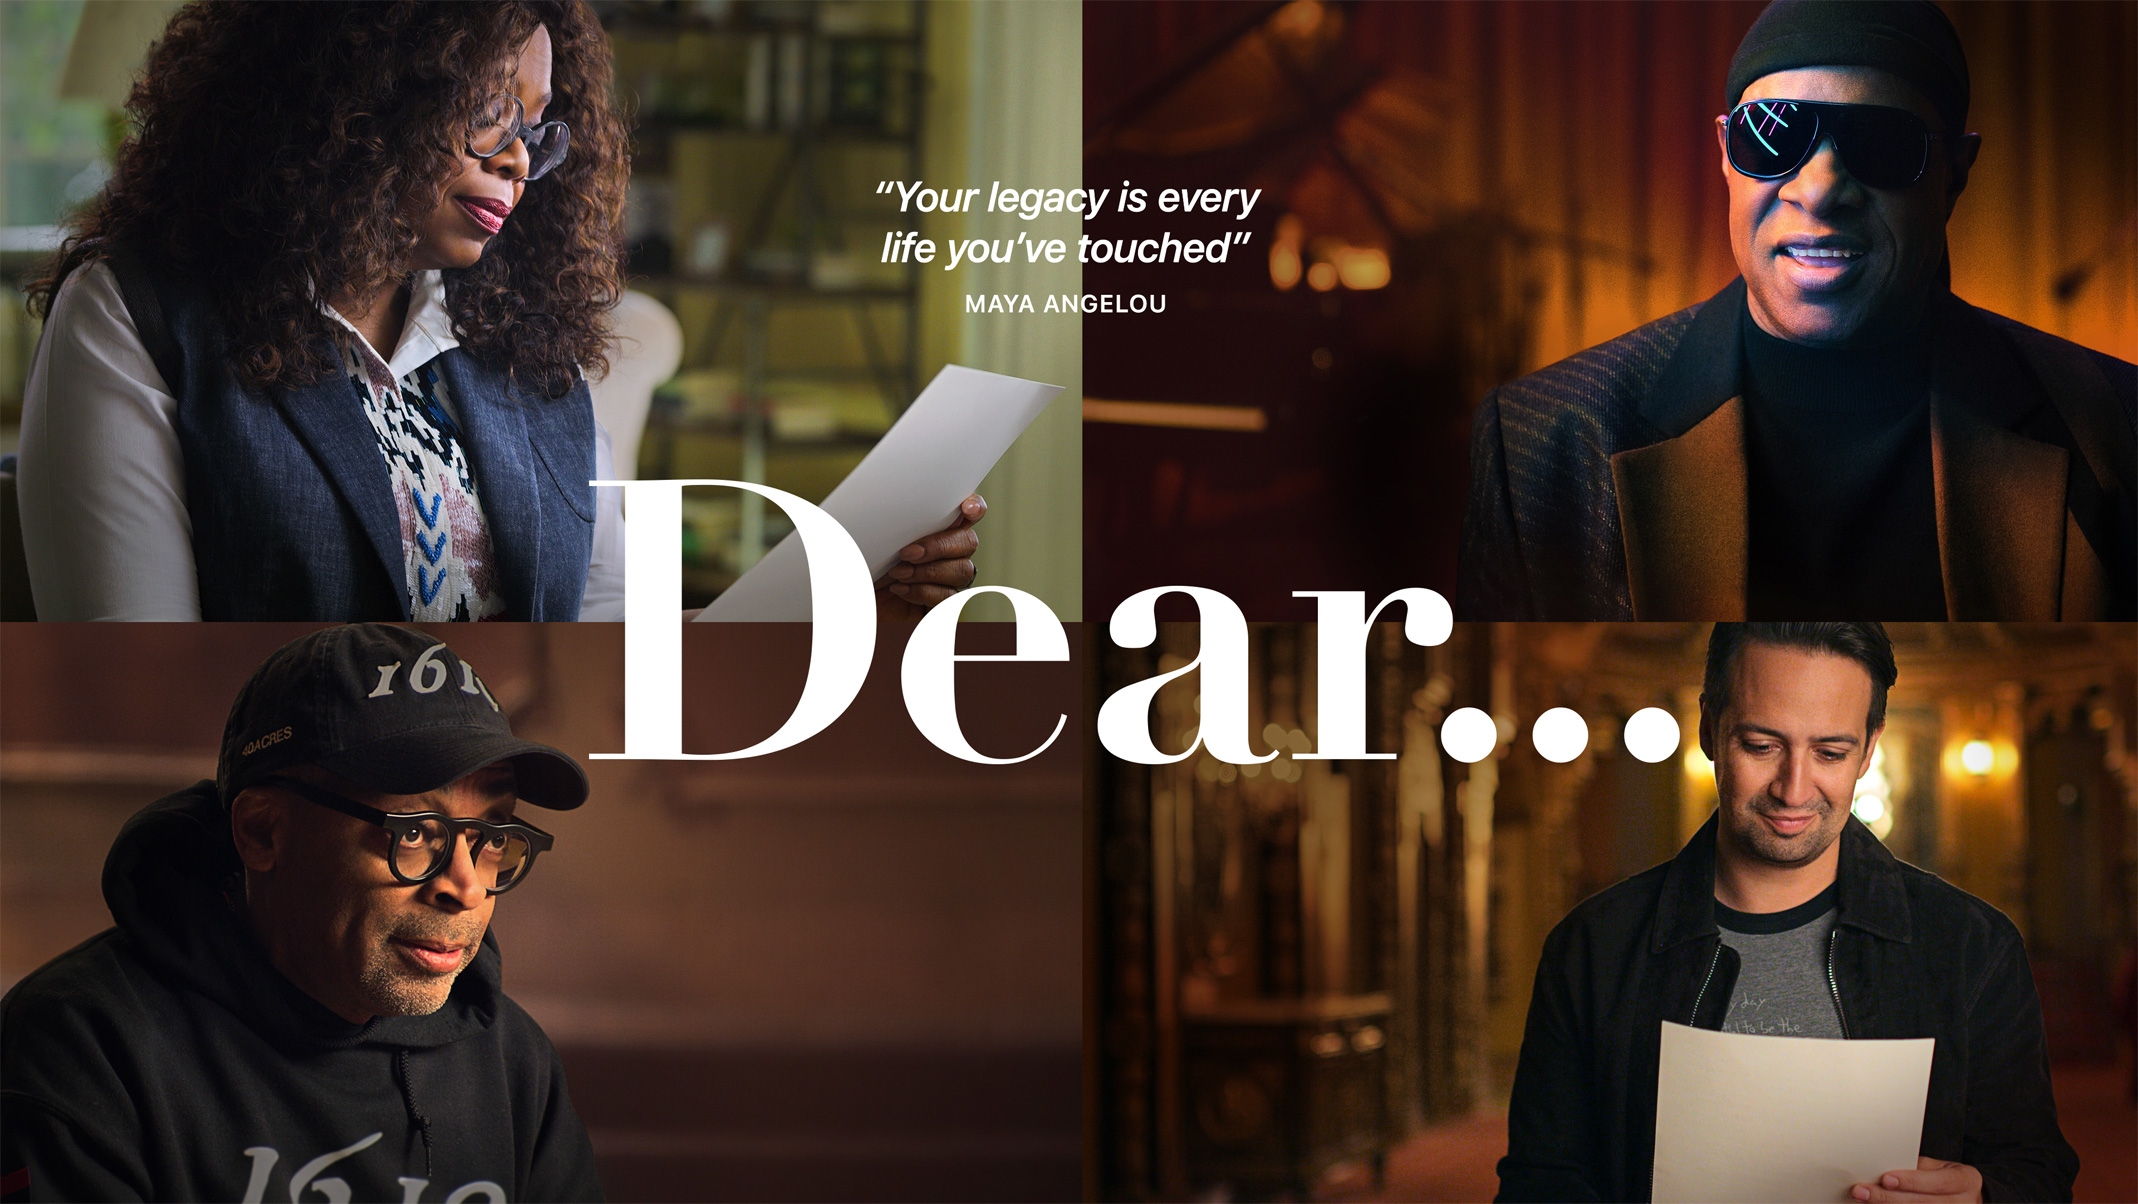 """New Apple TV+ Biographical Documentary Series, """"Dear..."""" Inspired by Apple Watch Ad"""